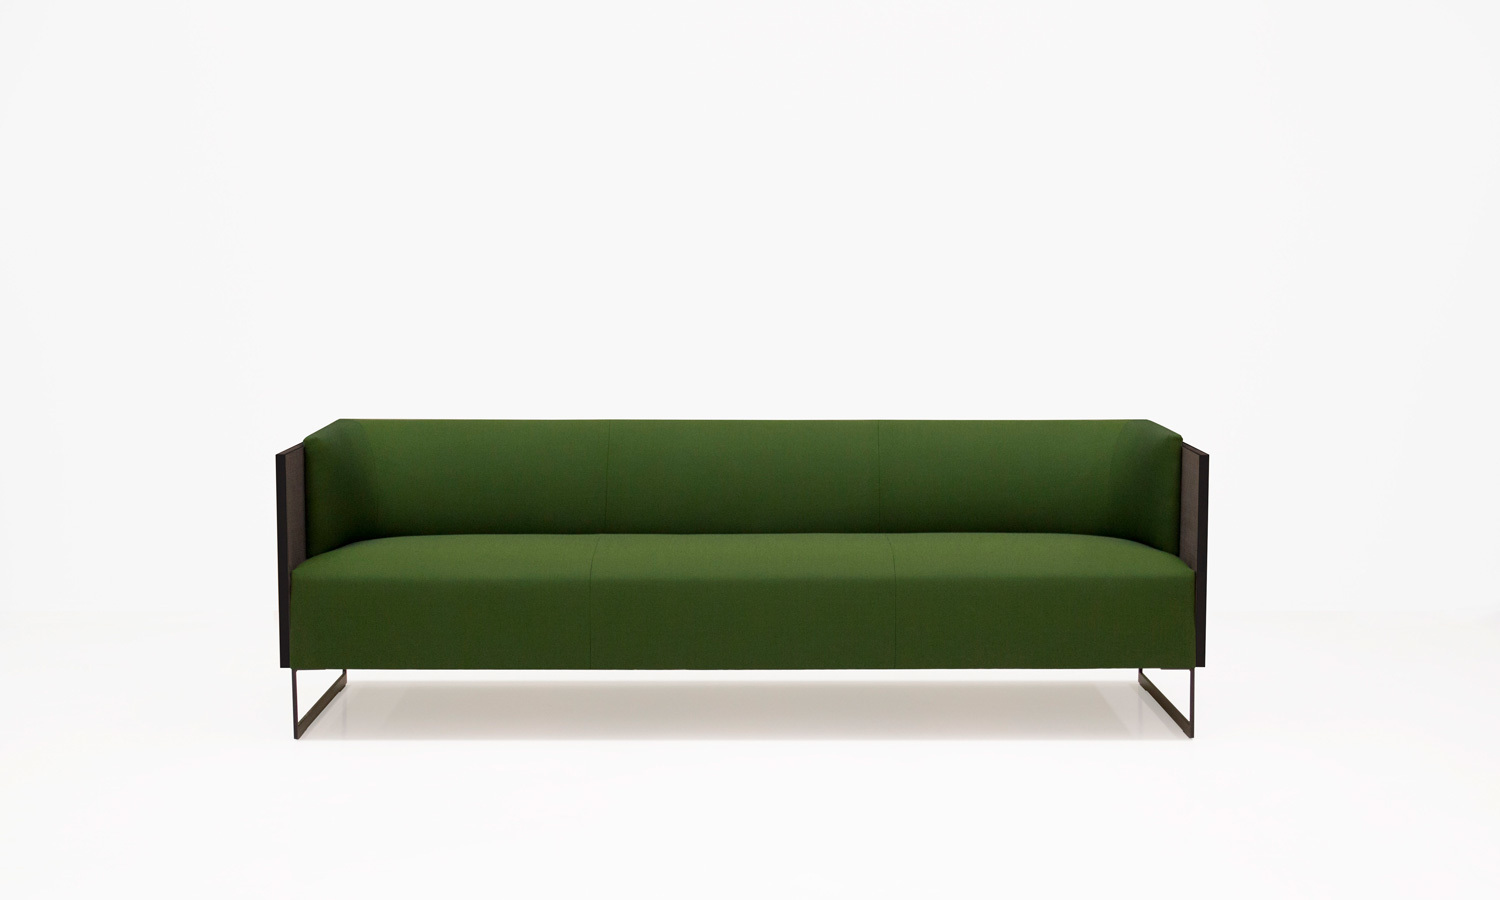 Joquer Deck Sofa Contract 03